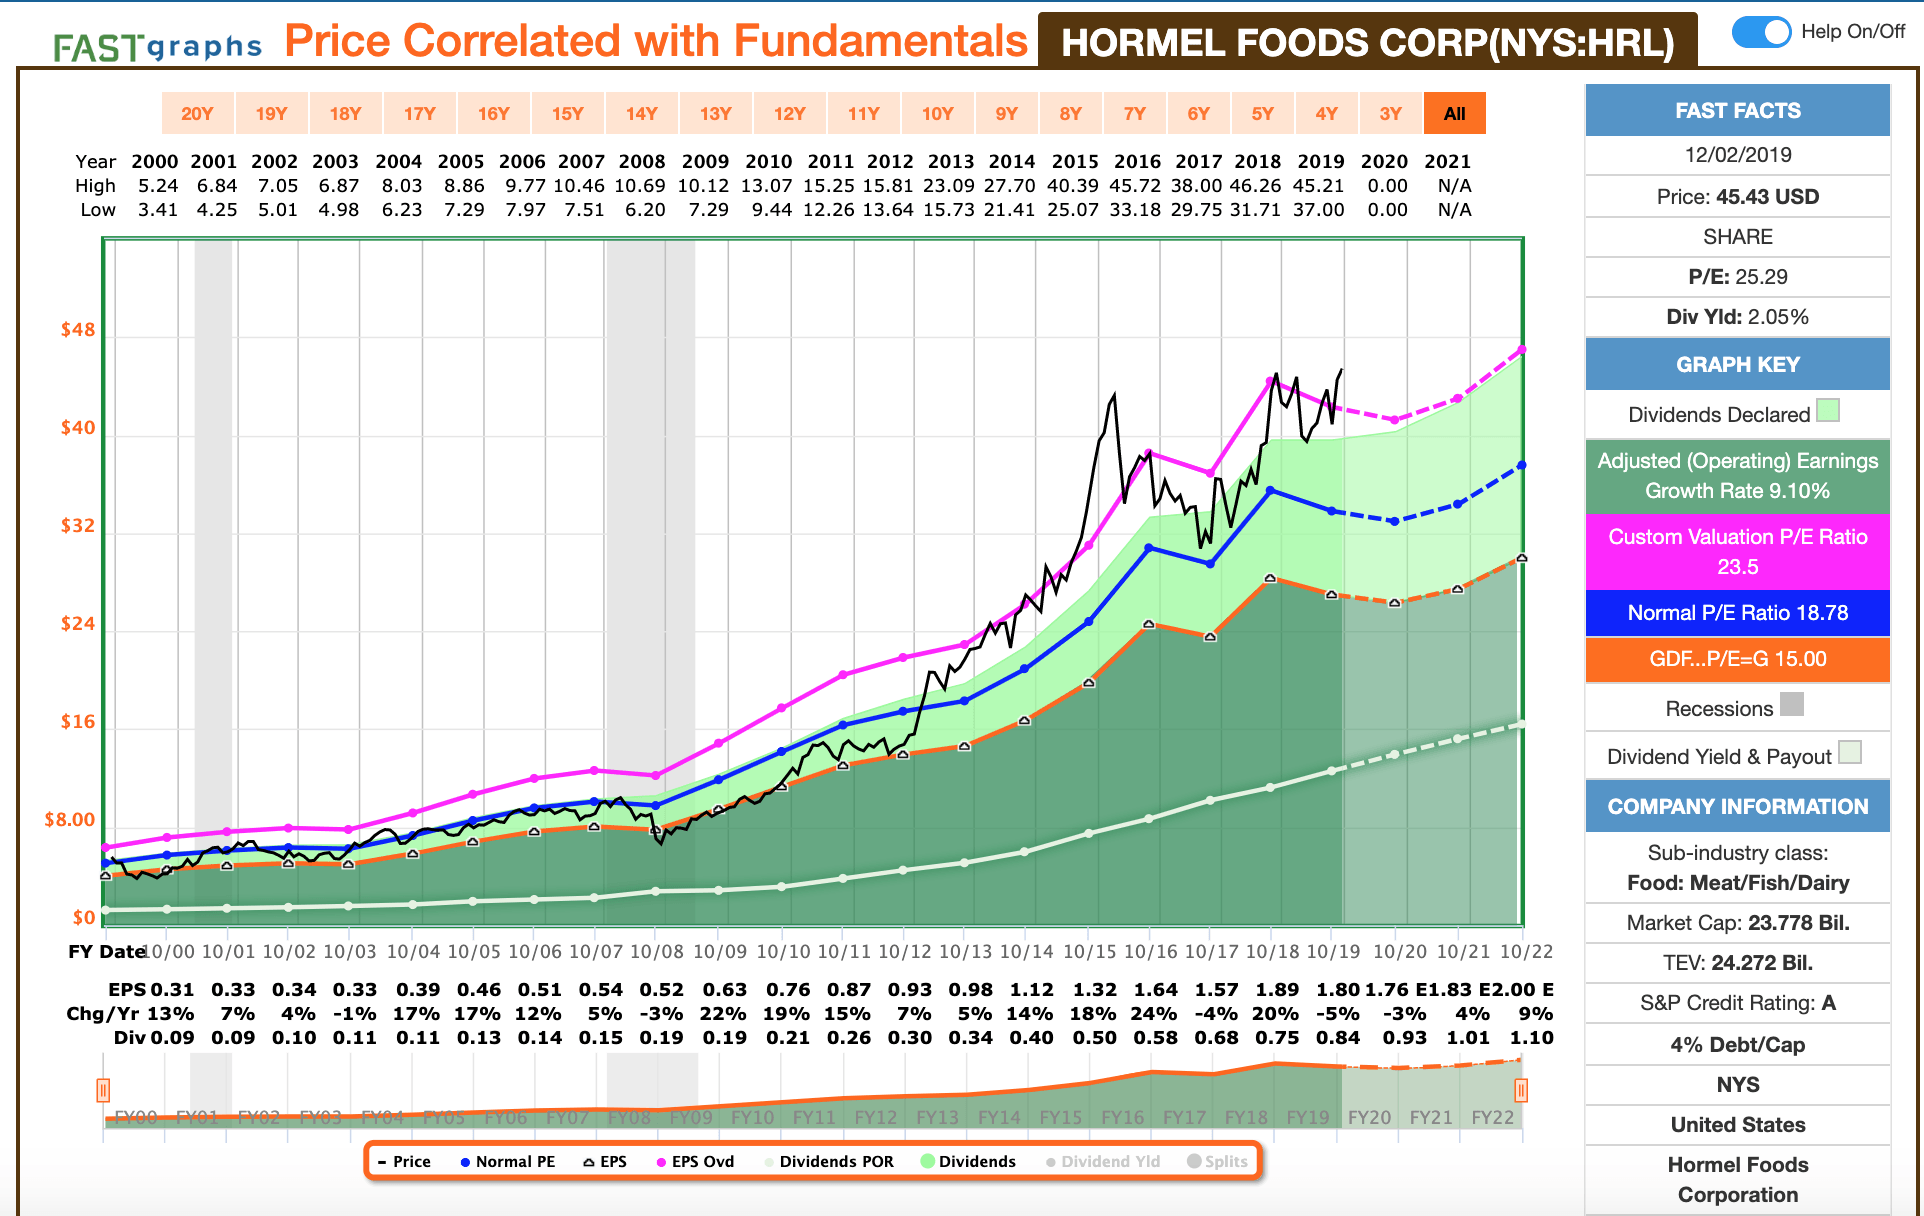 Hormel: Great Dividend Grower, But Significantly Overpriced - Hormel Foods Corporation (NYSE:HRL) | Seeking Alpha